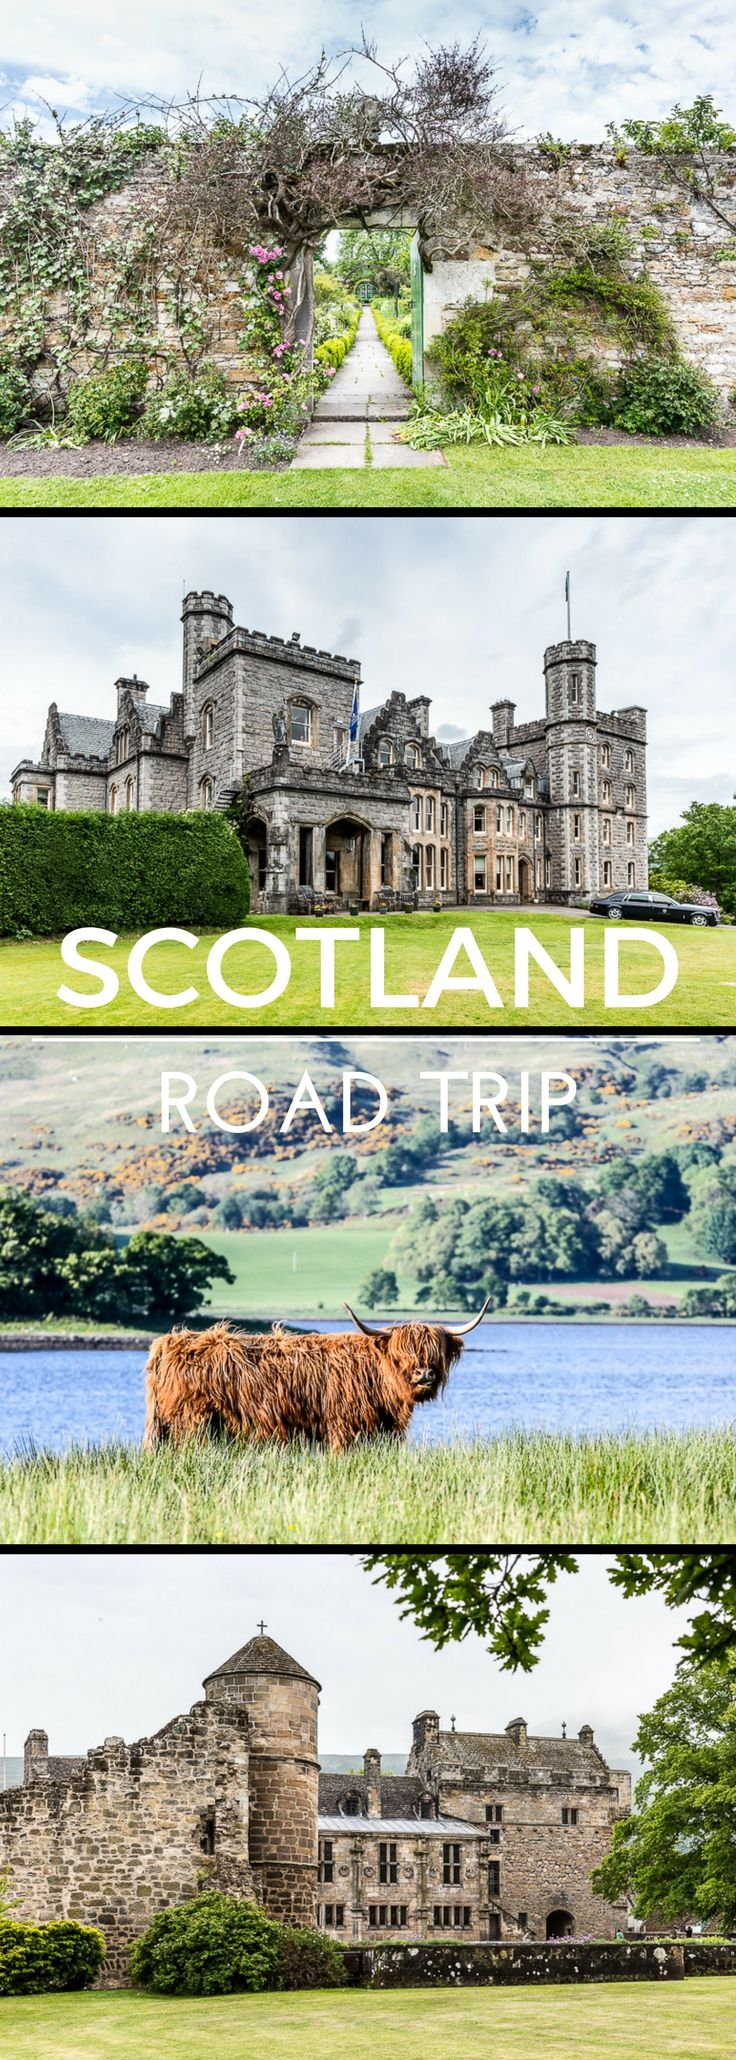 A lovely Scotland road trip itinerary, from east to west.